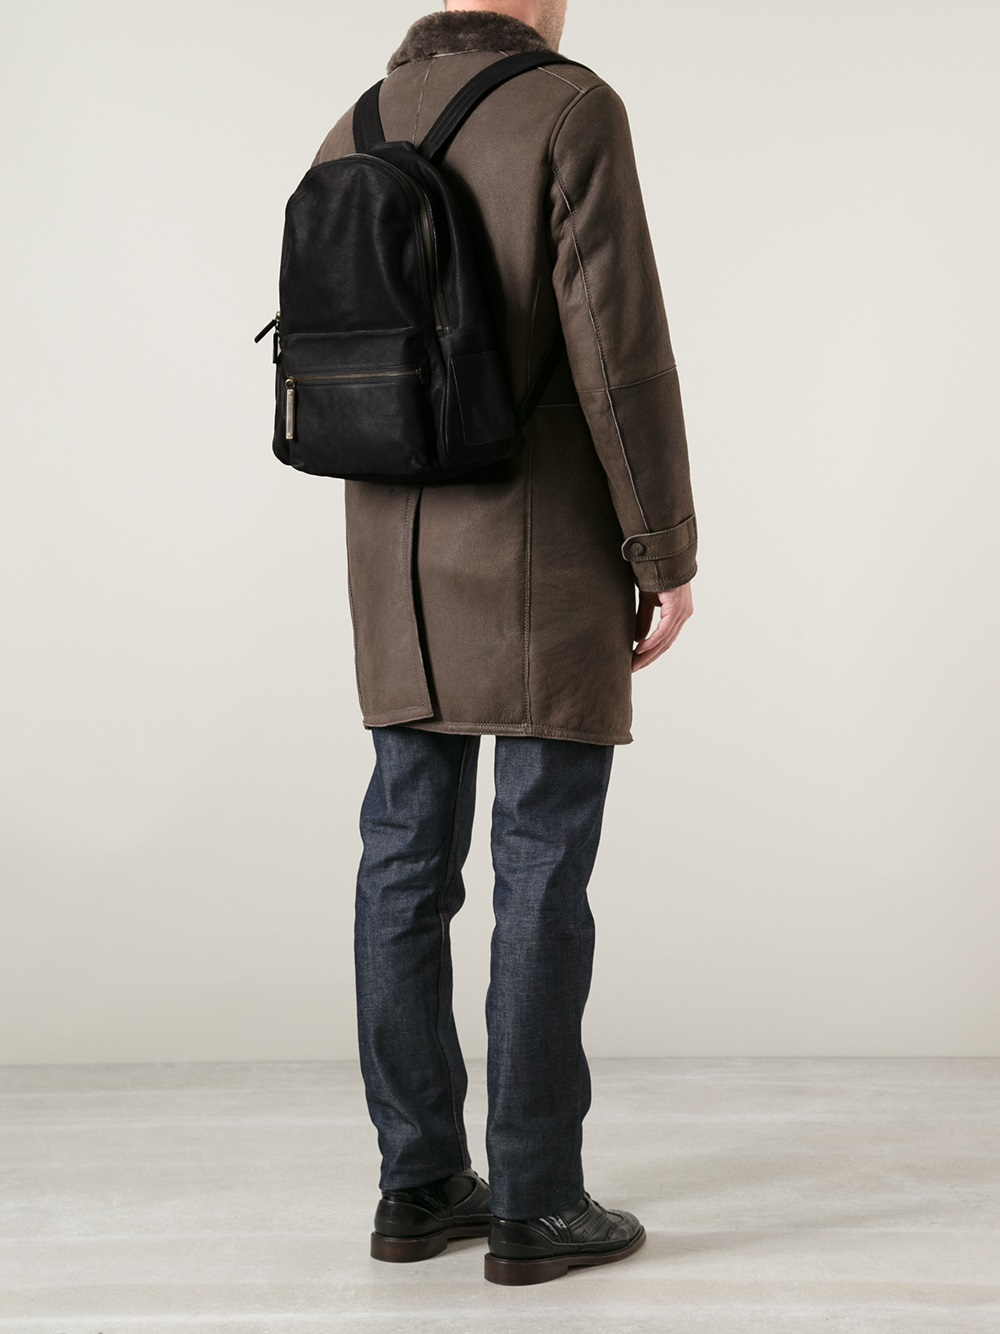 Orciani Leather Backpack in Black for Men | Lyst